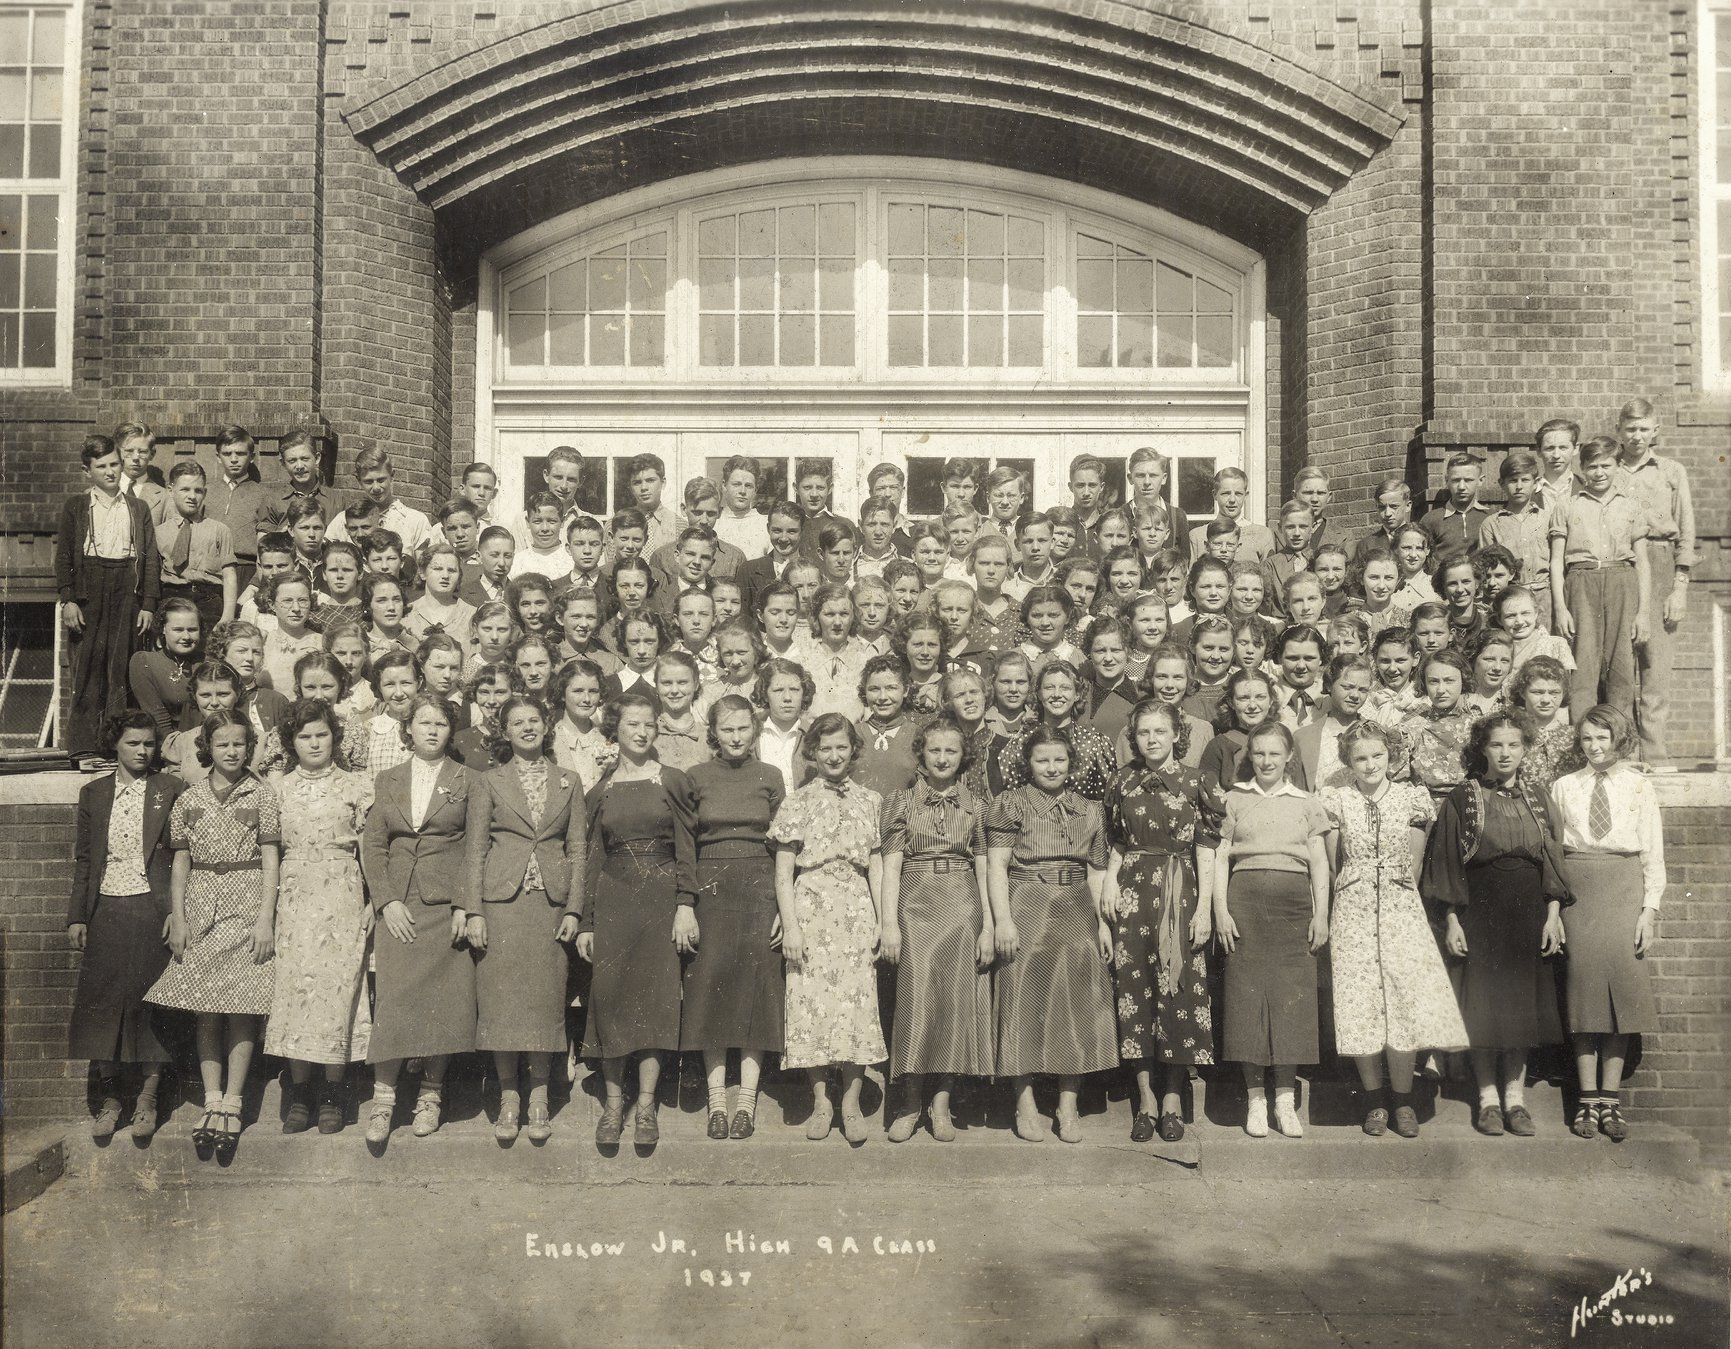 The 1937 Class of Enslow Middle School